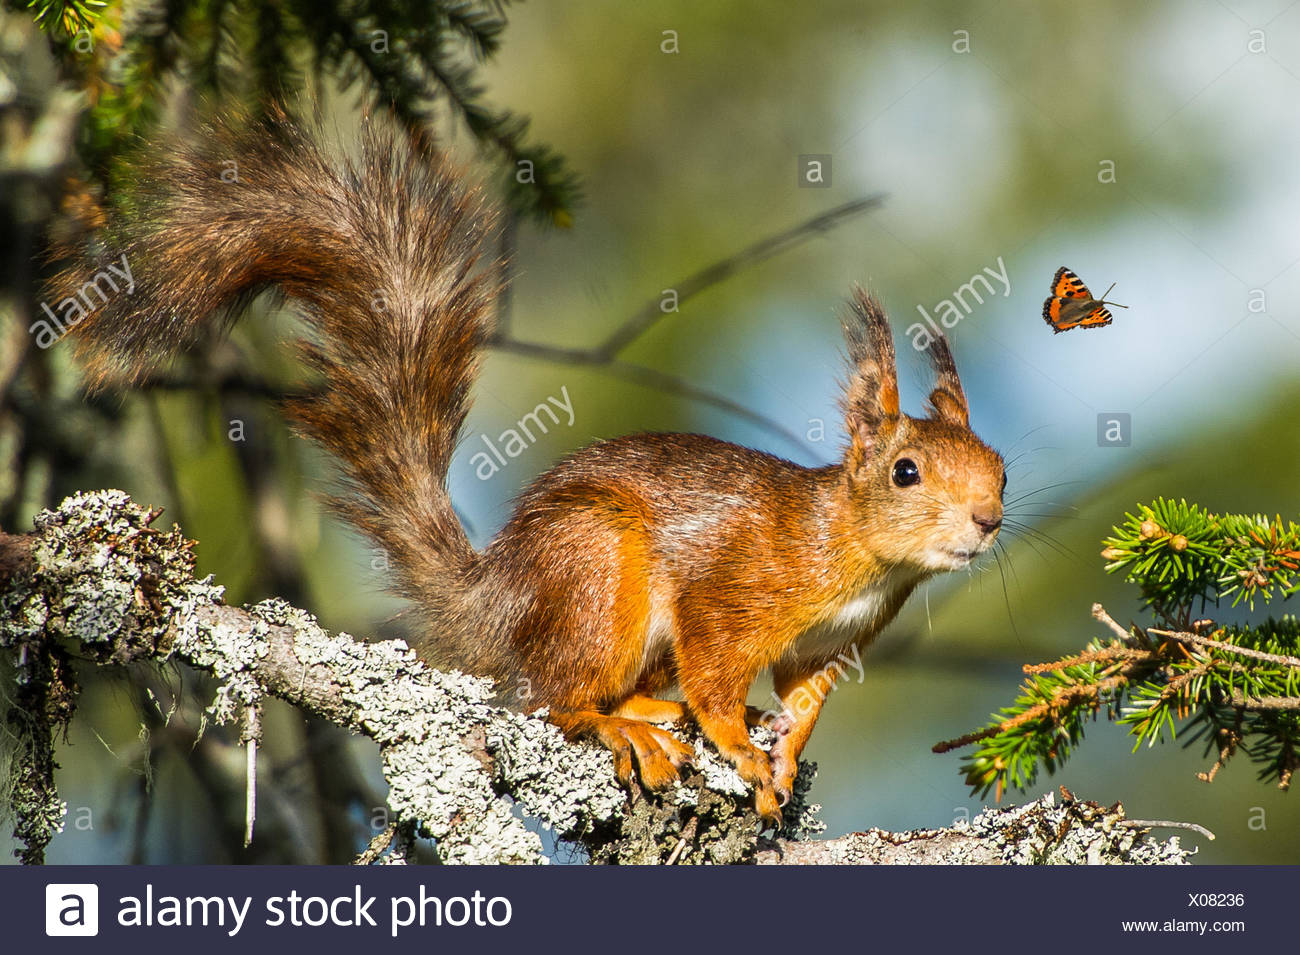 Squirrel looking at flying butterfly - Stock Image